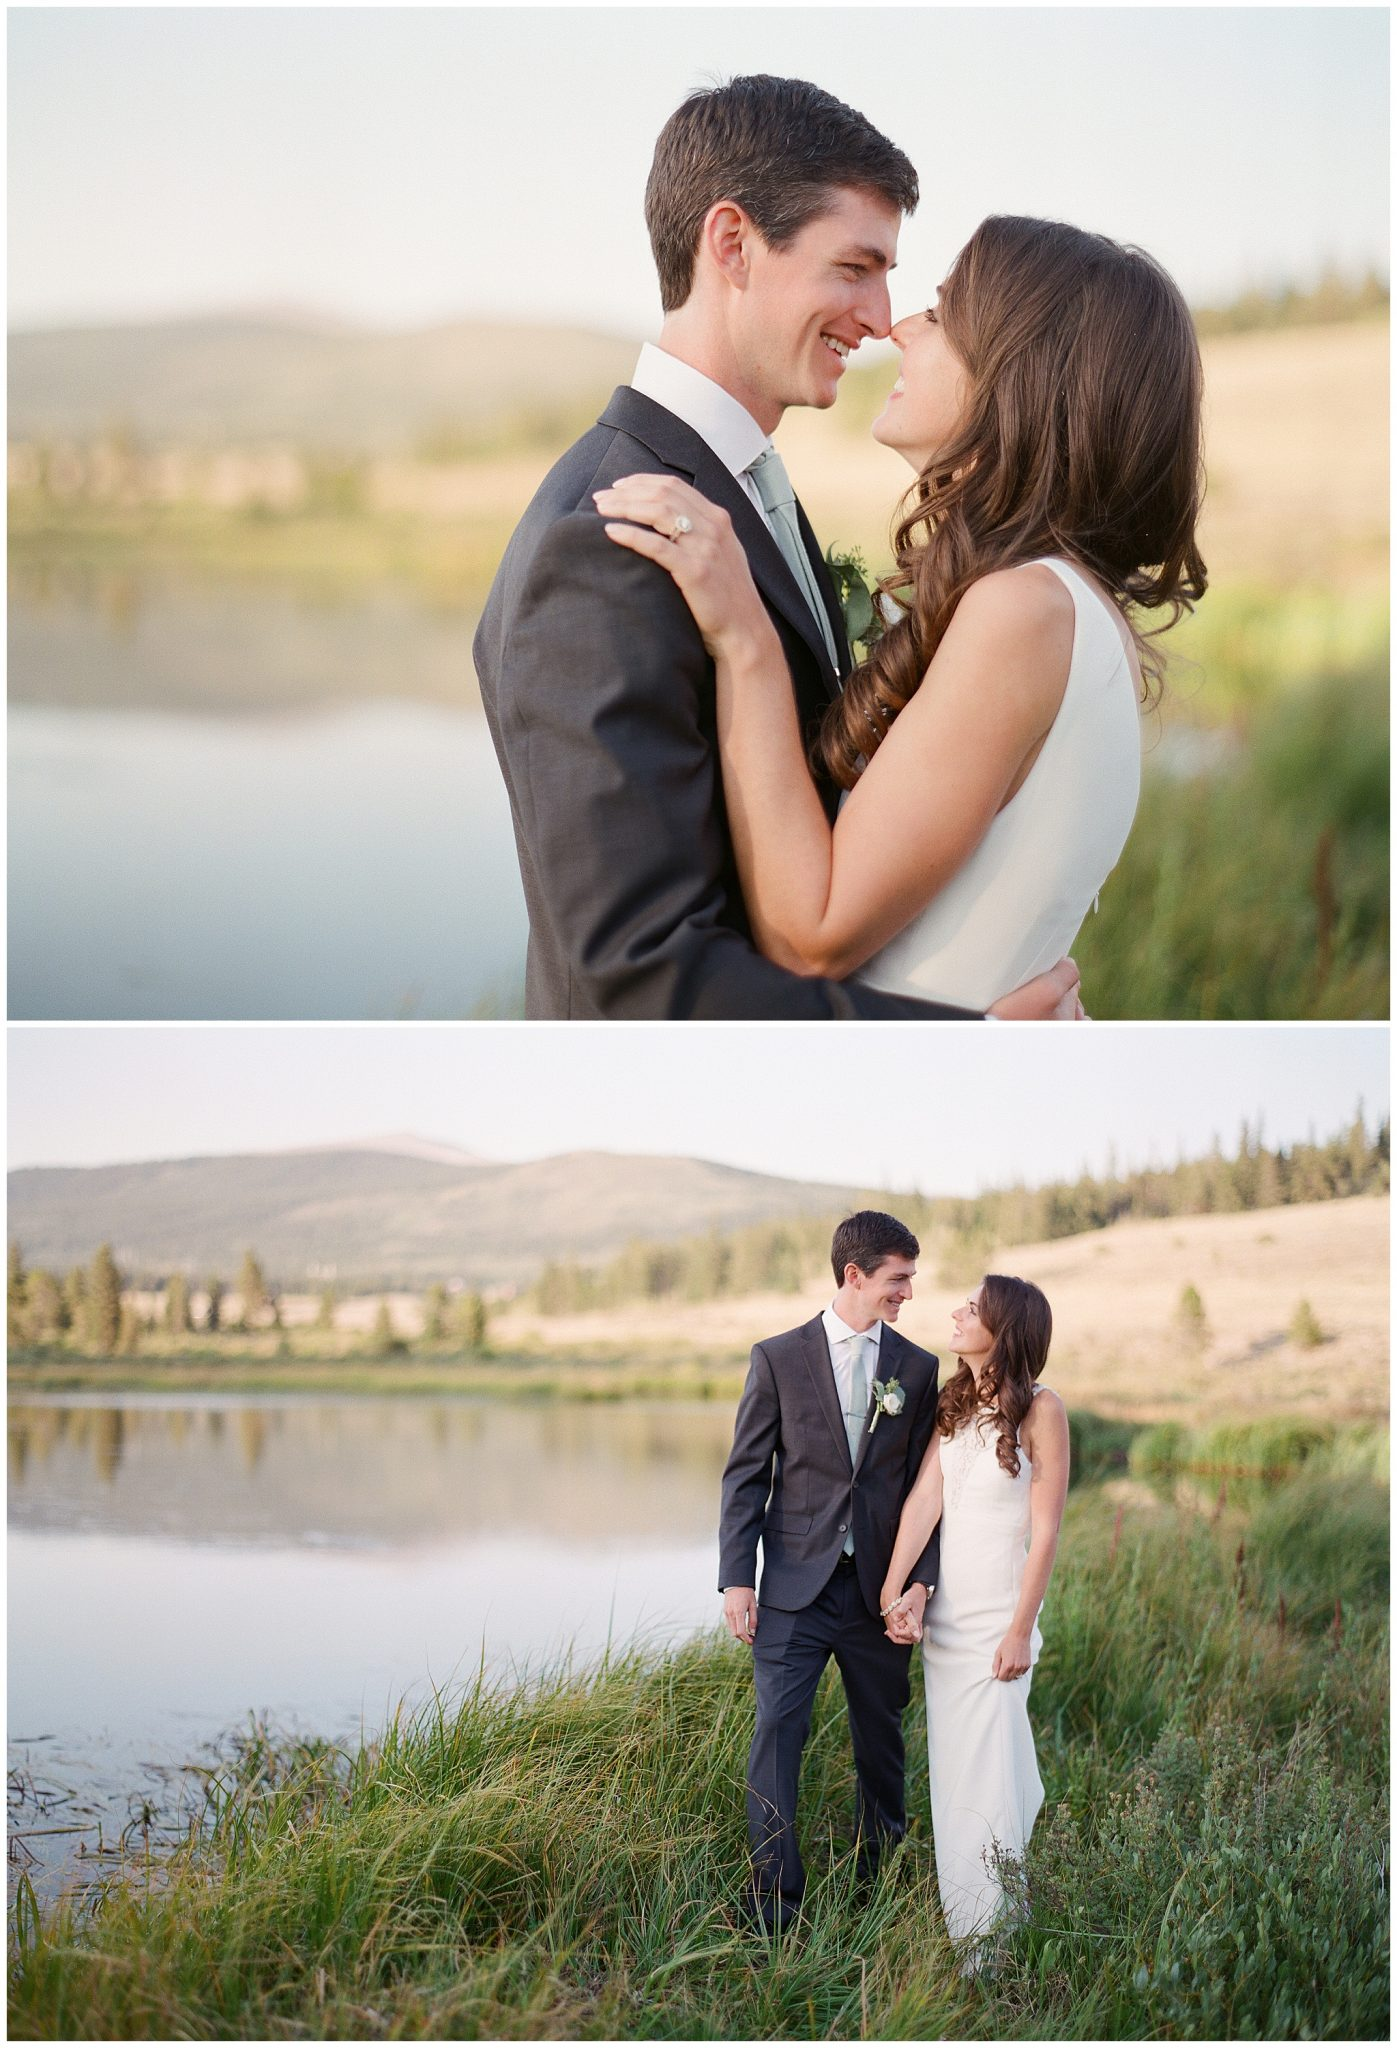 Bride and Groom Portraits shot on Film in Breckenridge Colorado